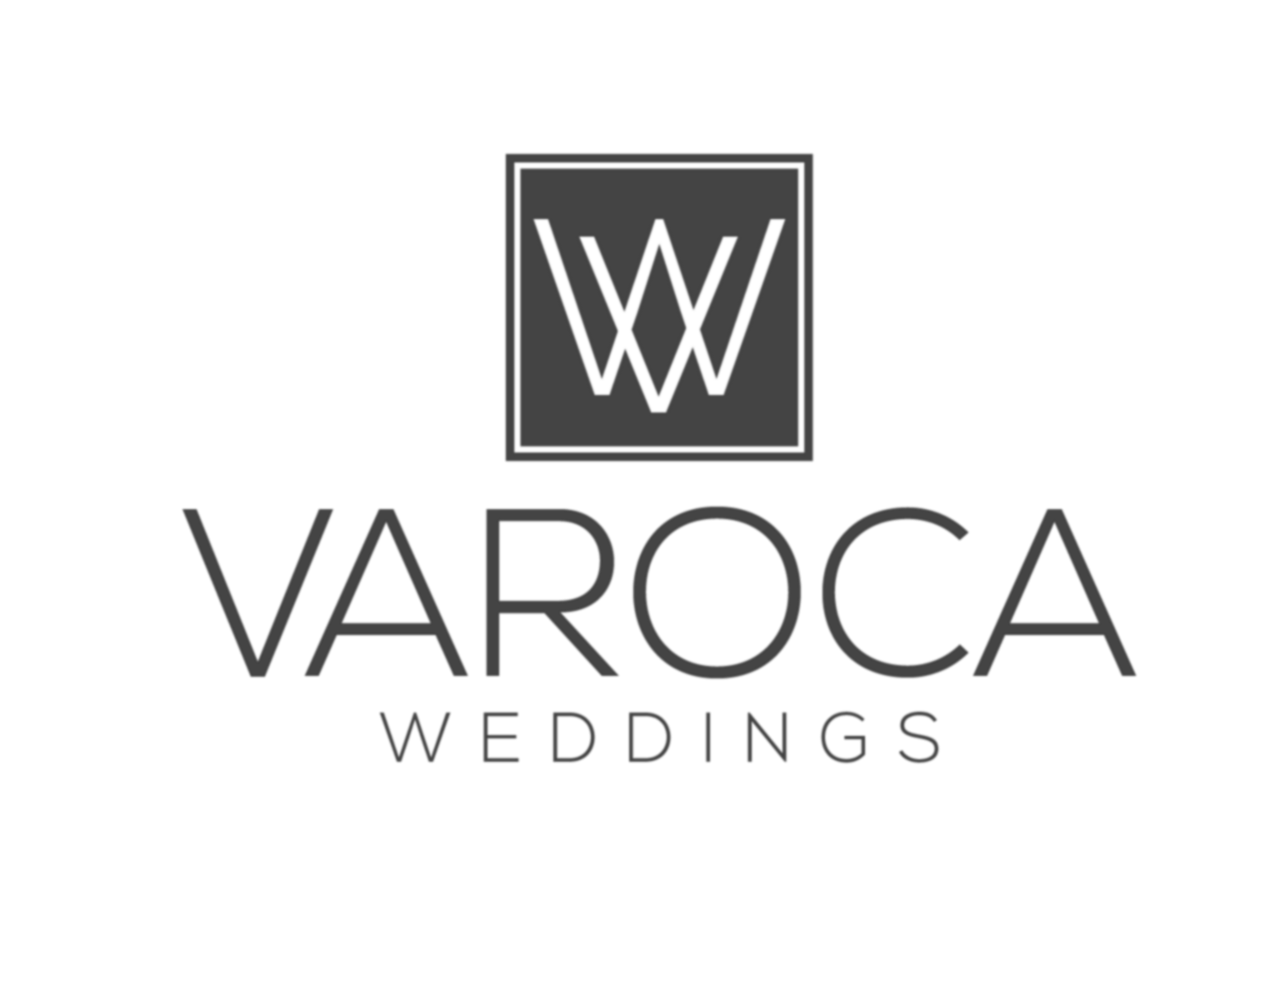 VAROCA Weddings